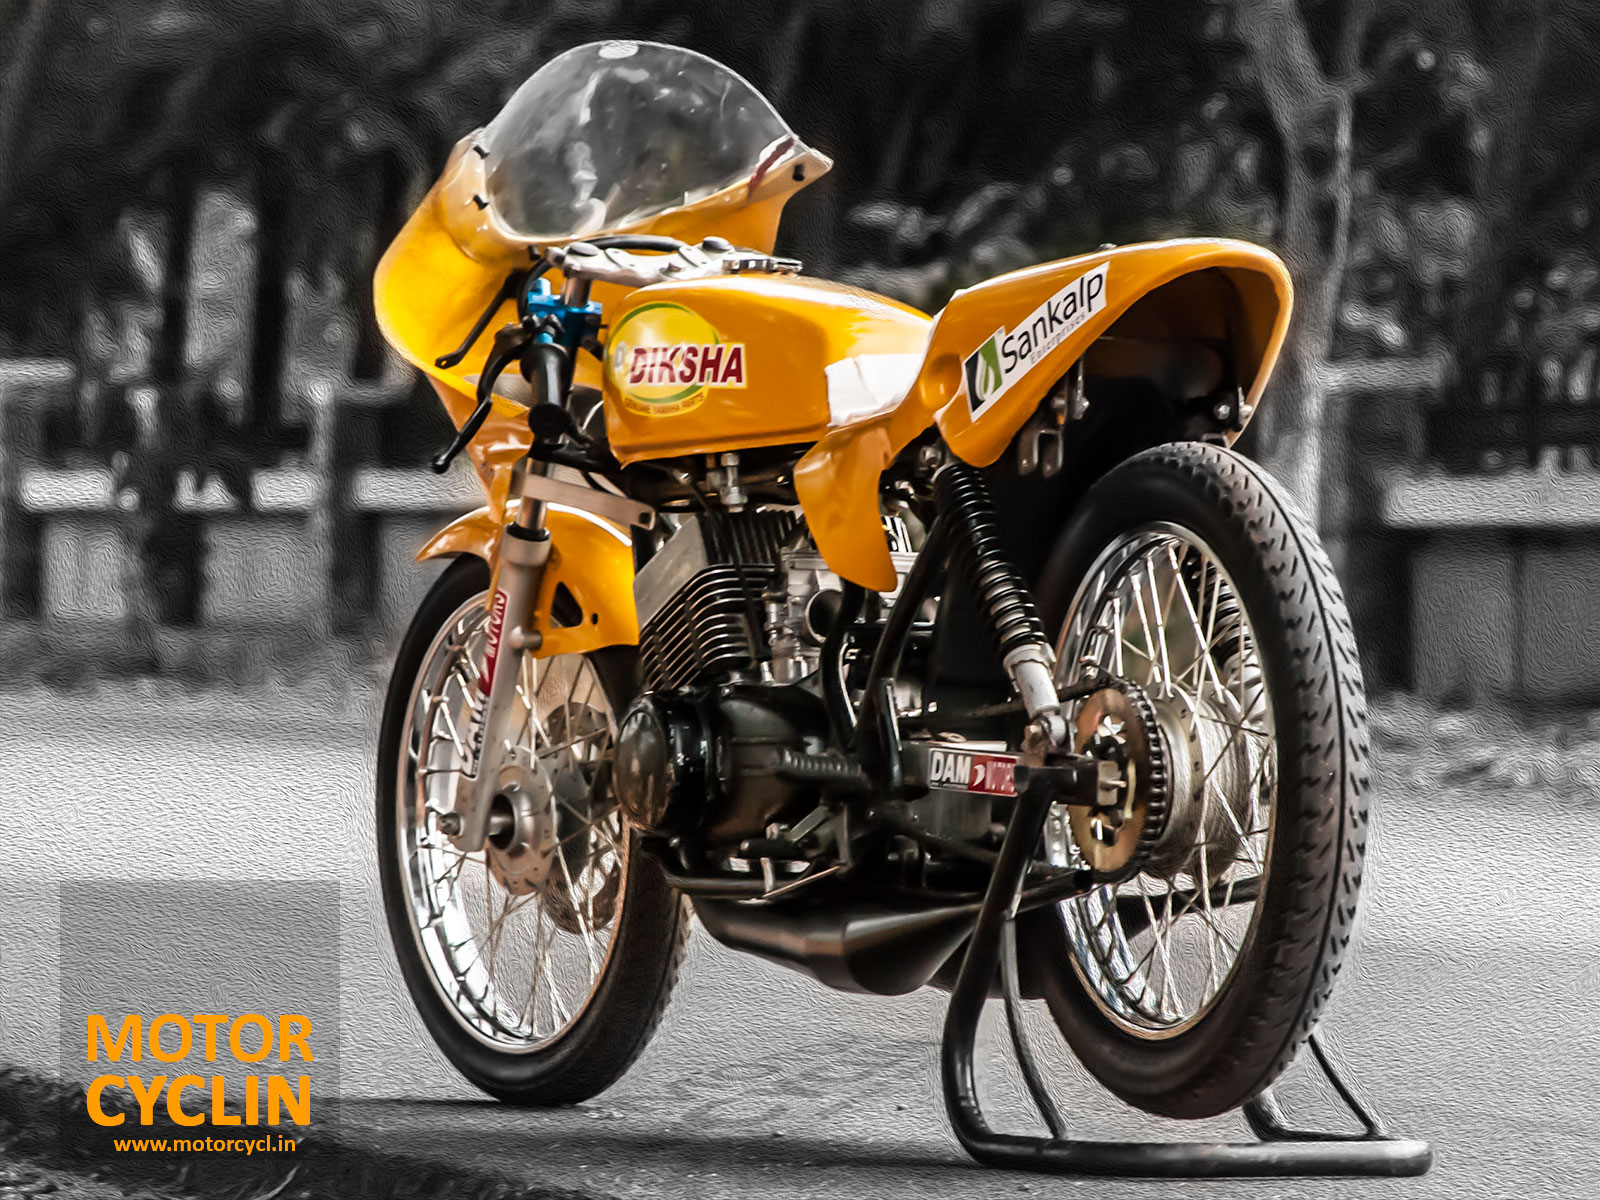 Yamaha RD 350 drag bike